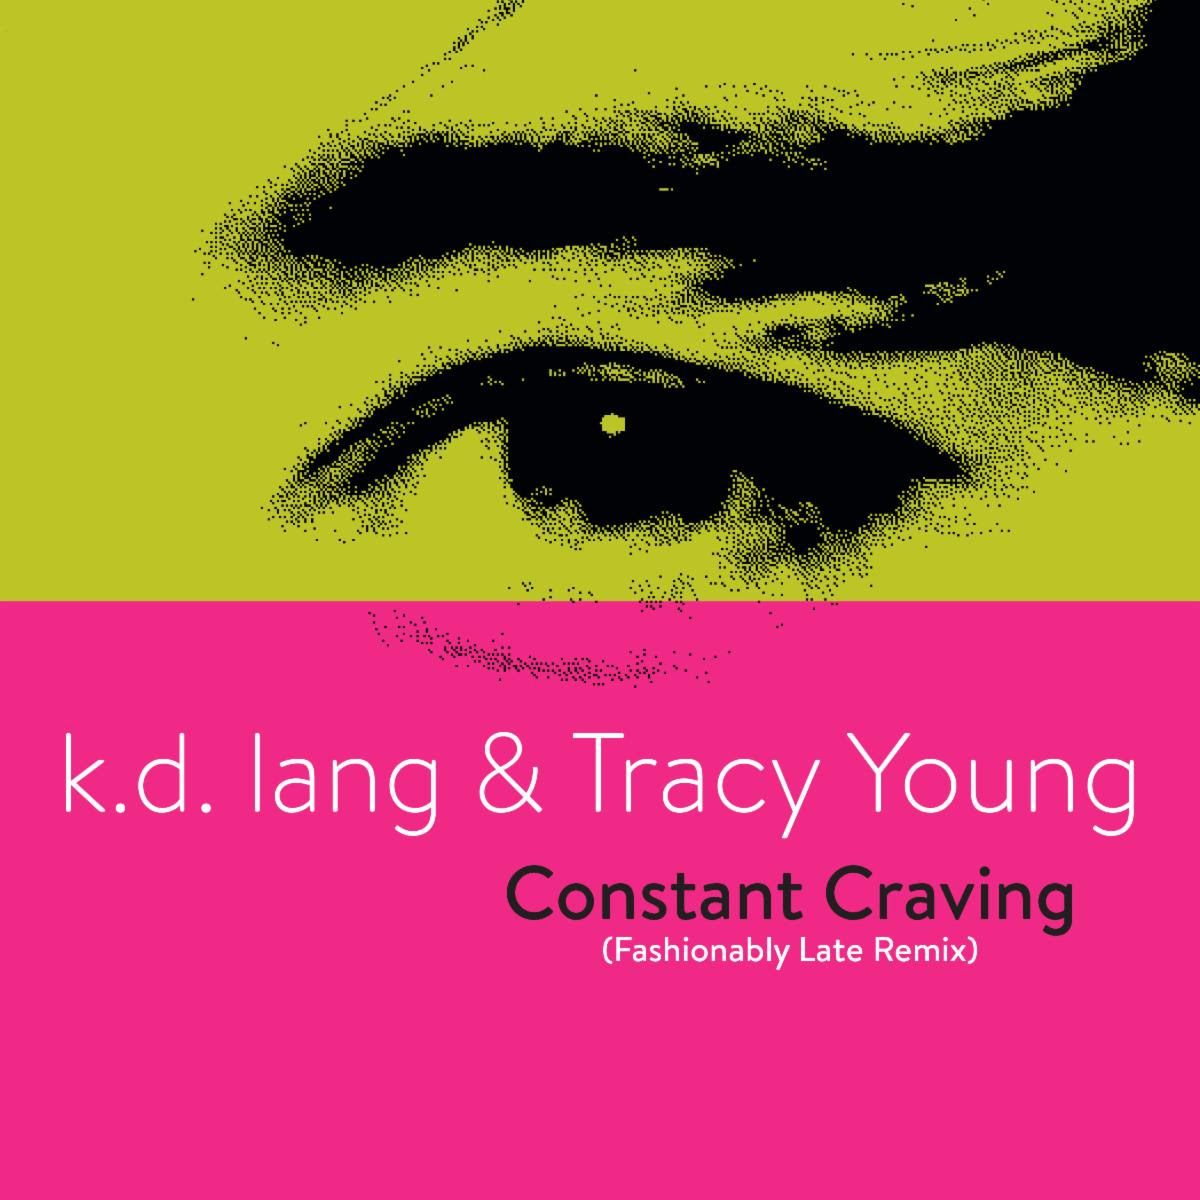 k.d. lang and Tracy Young